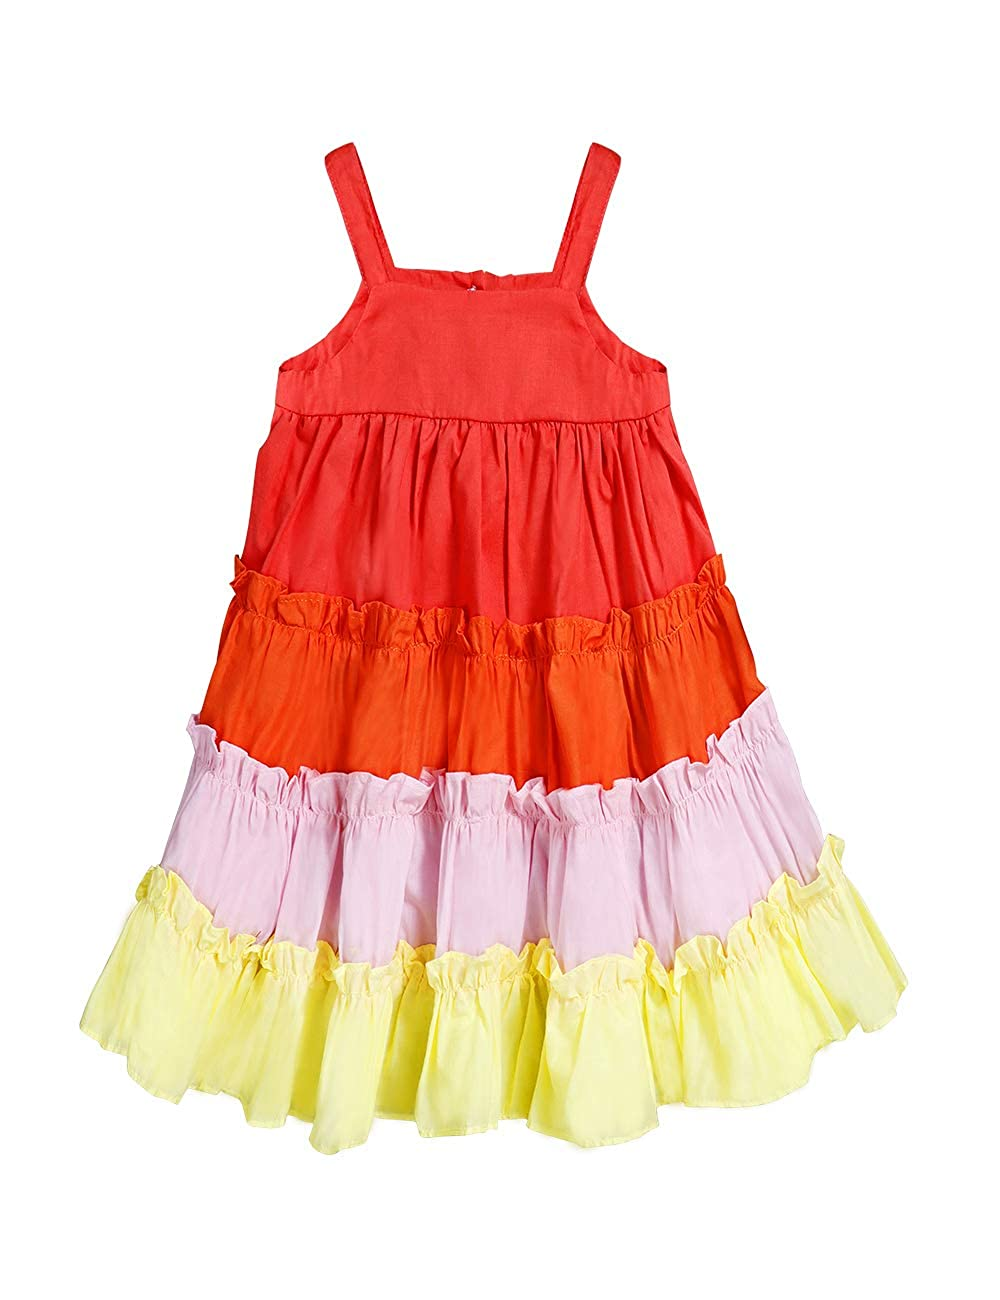 Kids Summer Twirl Dress Little Baby Girls Rainbow Dress Toddler Princess Sleeveless Halter Beach Tutu Sundress